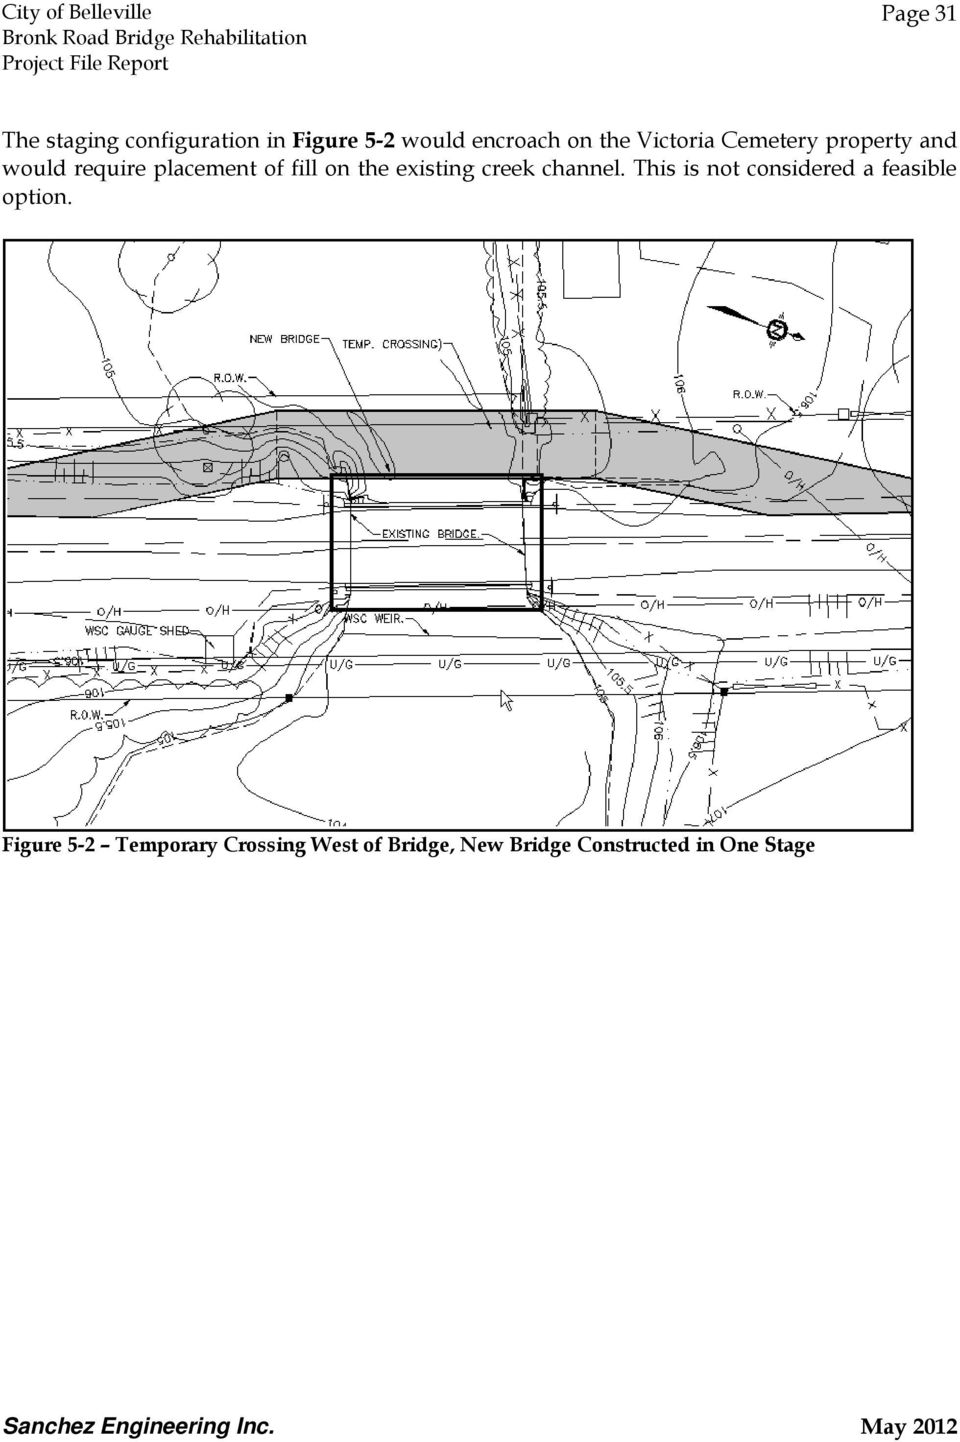 existing creek channel. This is not considered a feasible option.